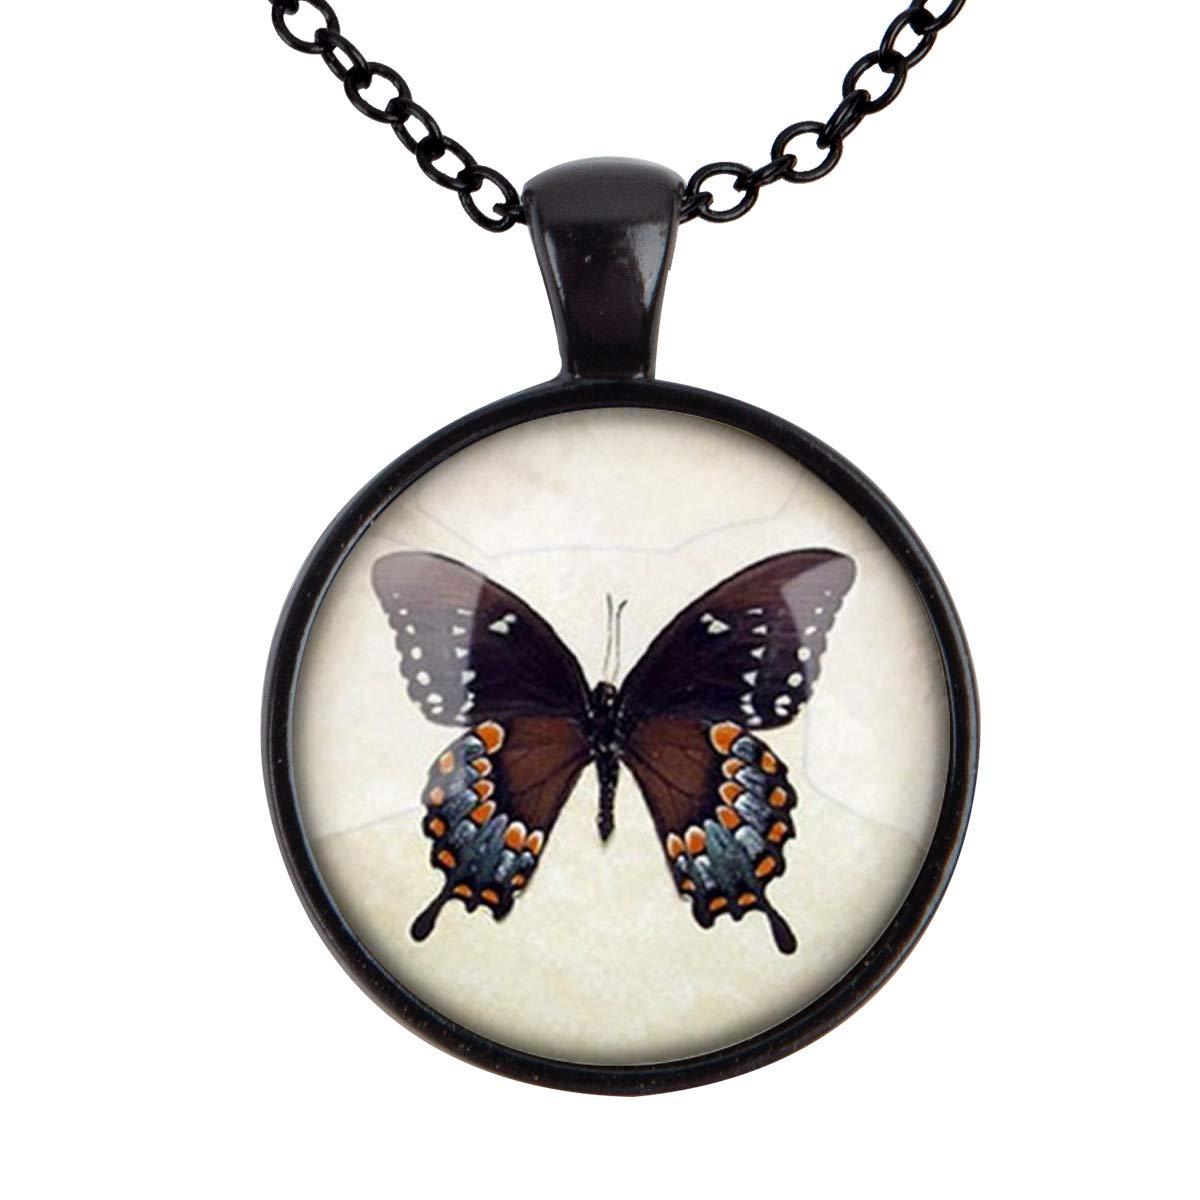 Family Decor Ancients Butterfly Pendant Necklace Cabochon Glass Vintage Bronze Chain Necklace Jewelry Handmade